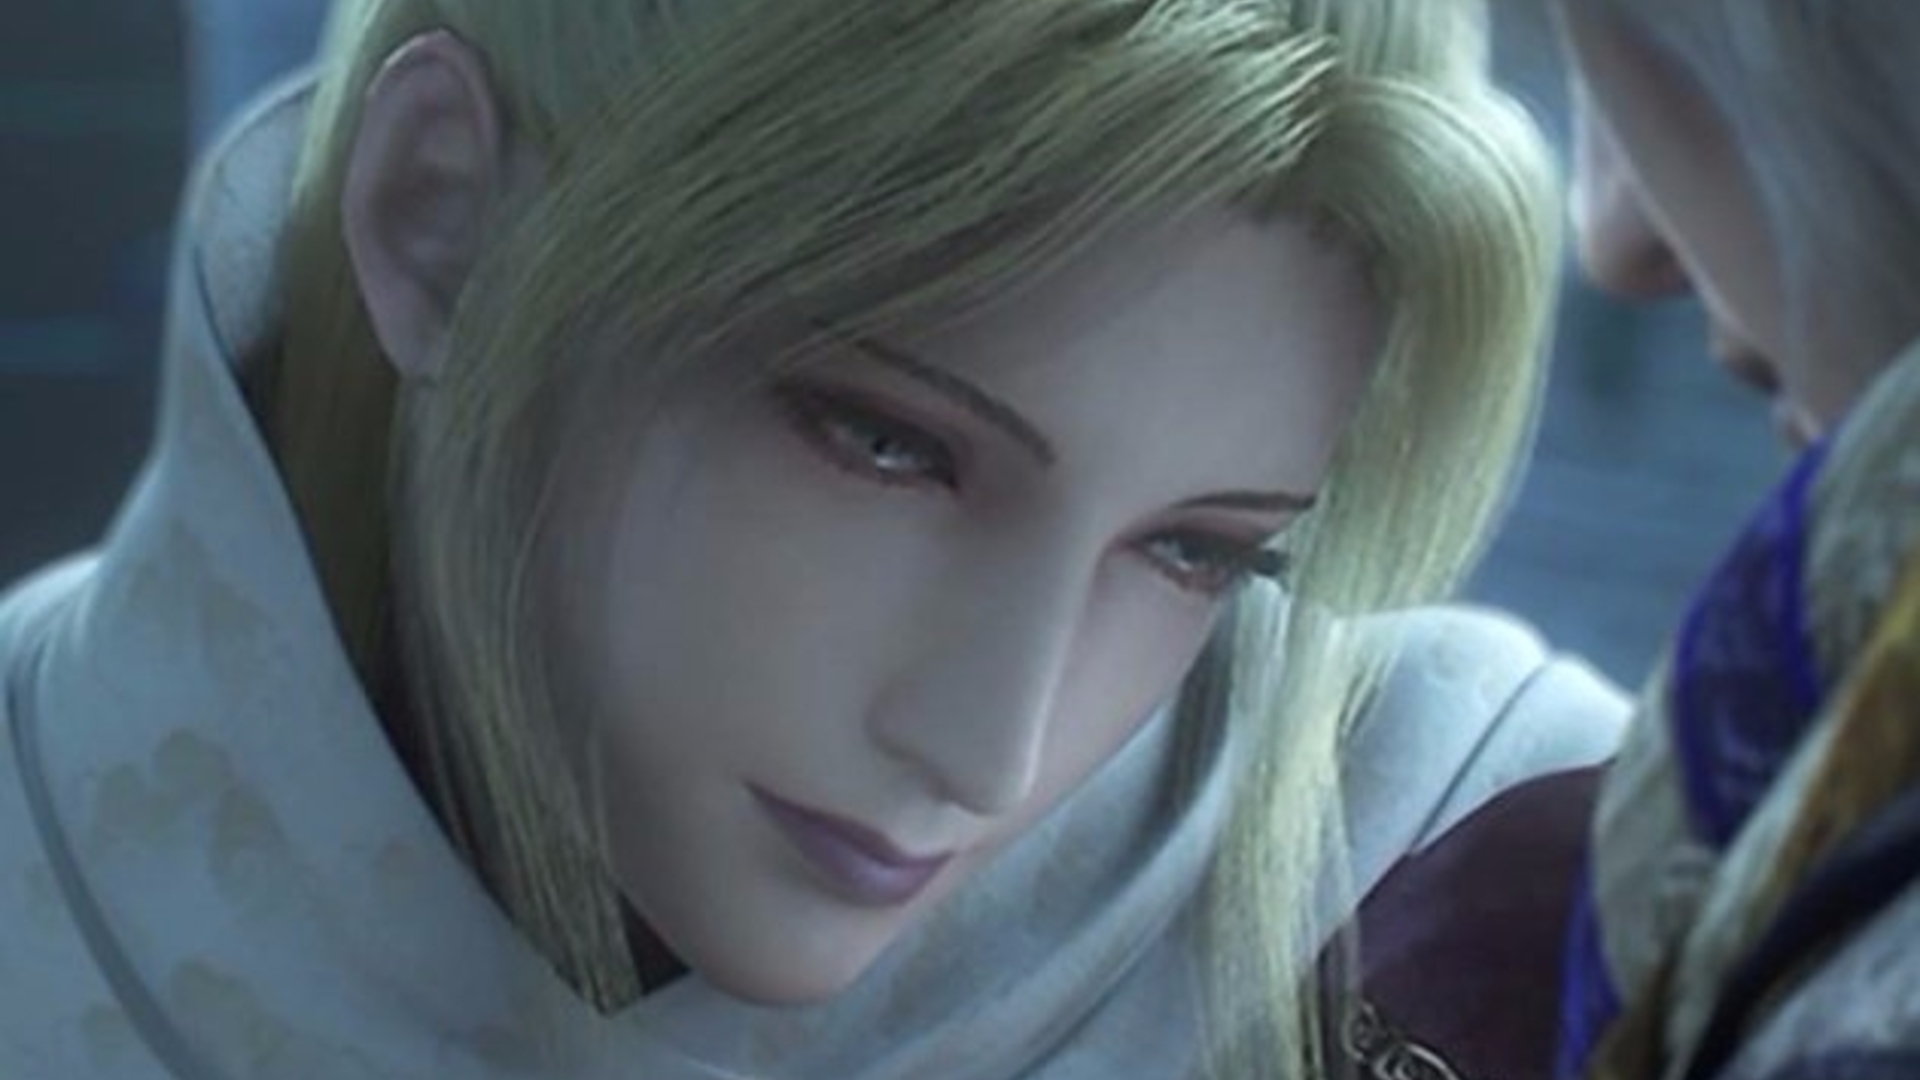 Final Fantasy 4: The After Years is coming to Steam next month